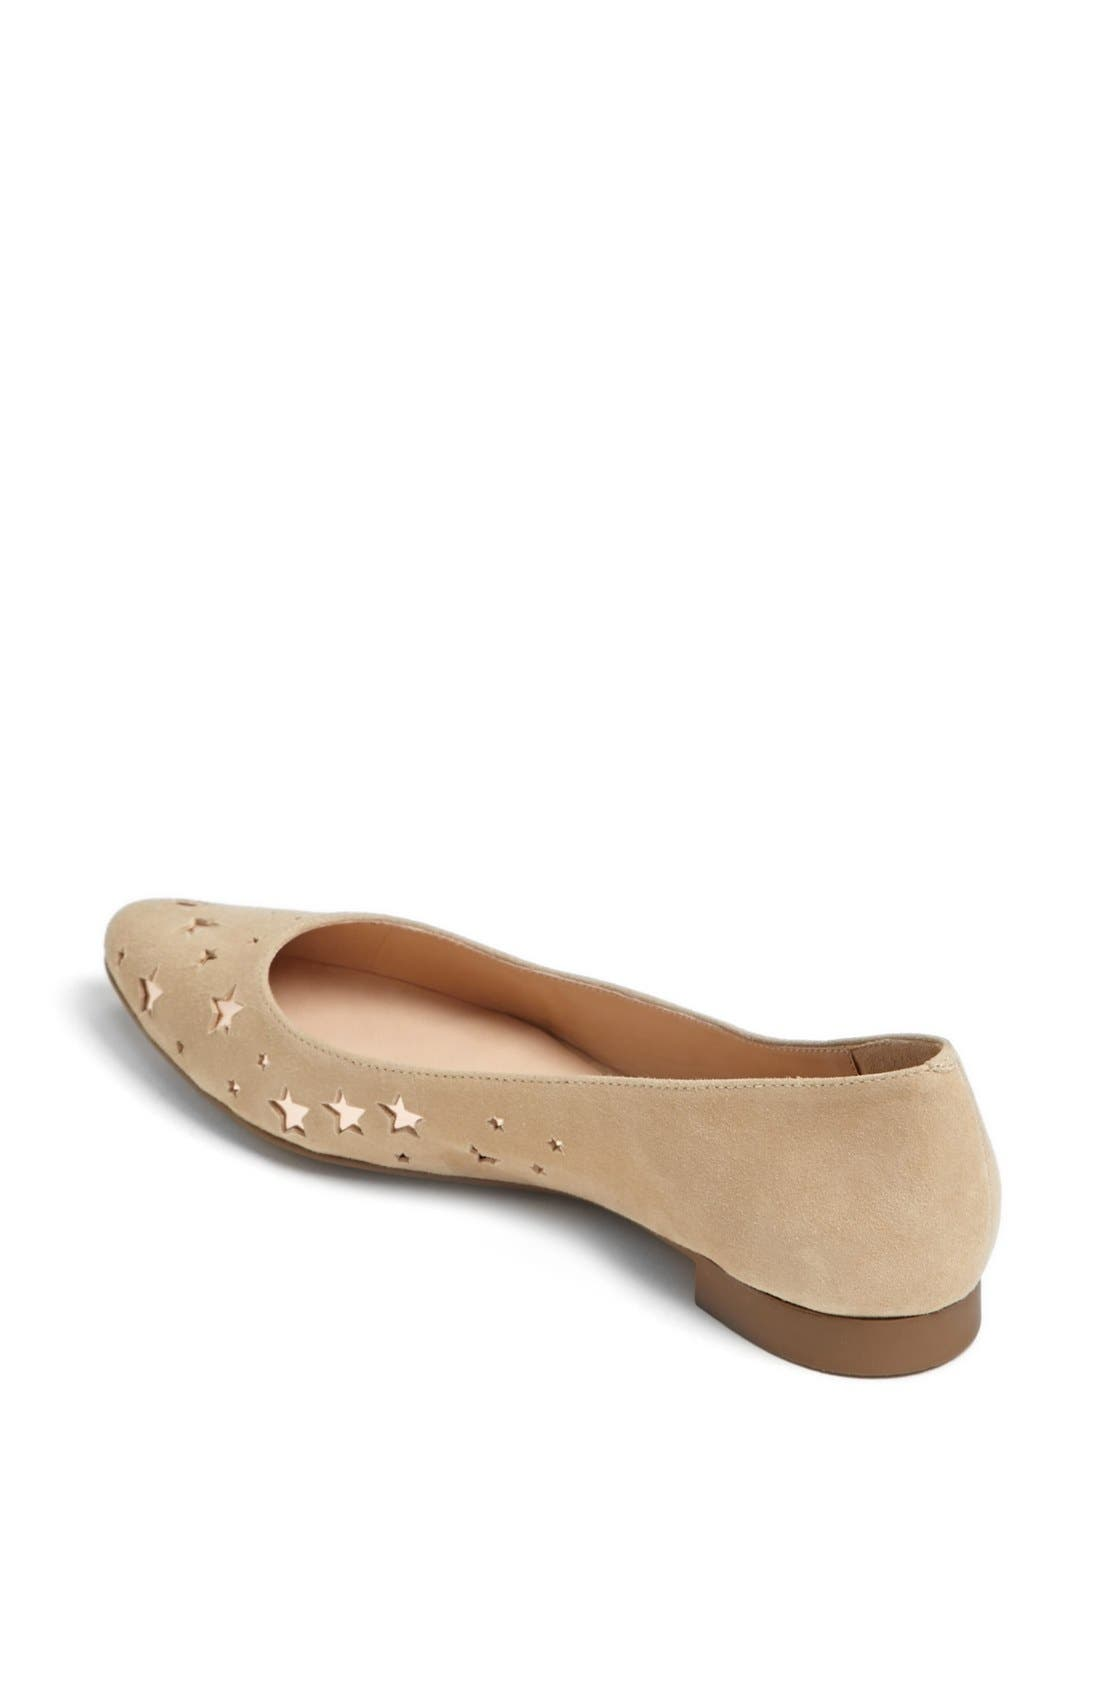 Alternate Image 2  - kate spade new york 'evennie' flat